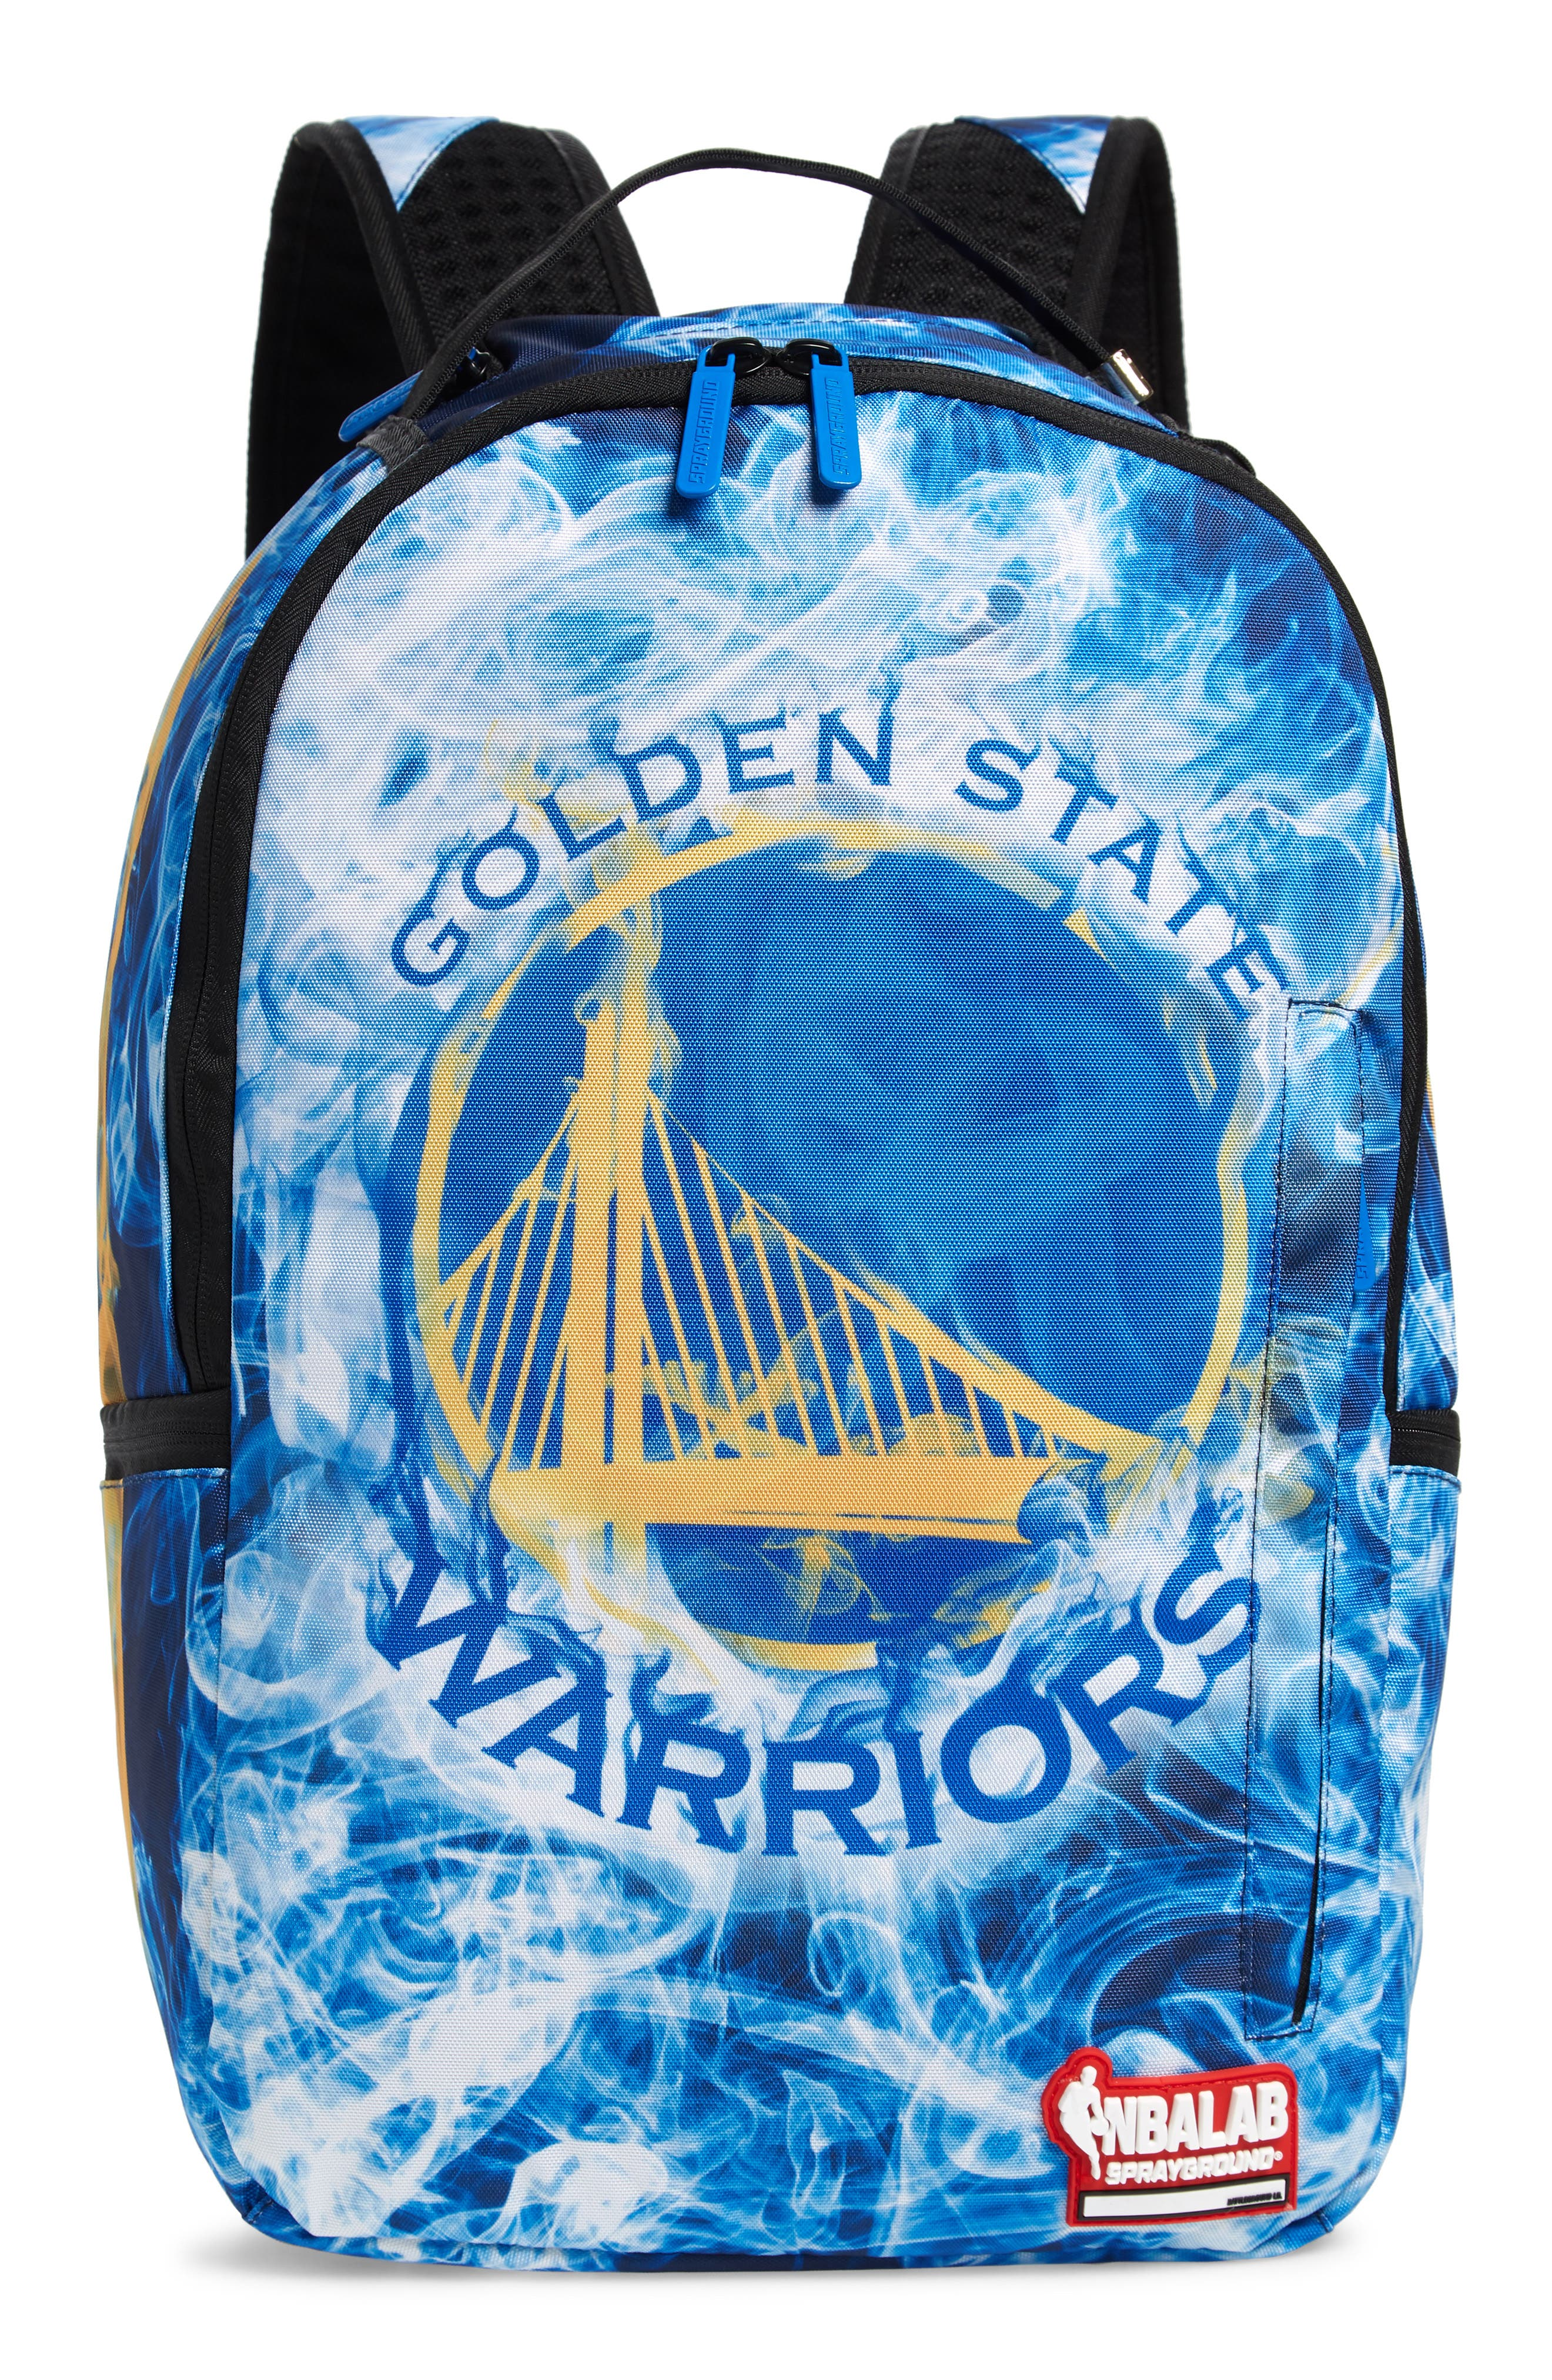 Golden State Smoke Backpack,                         Main,                         color, BLUE